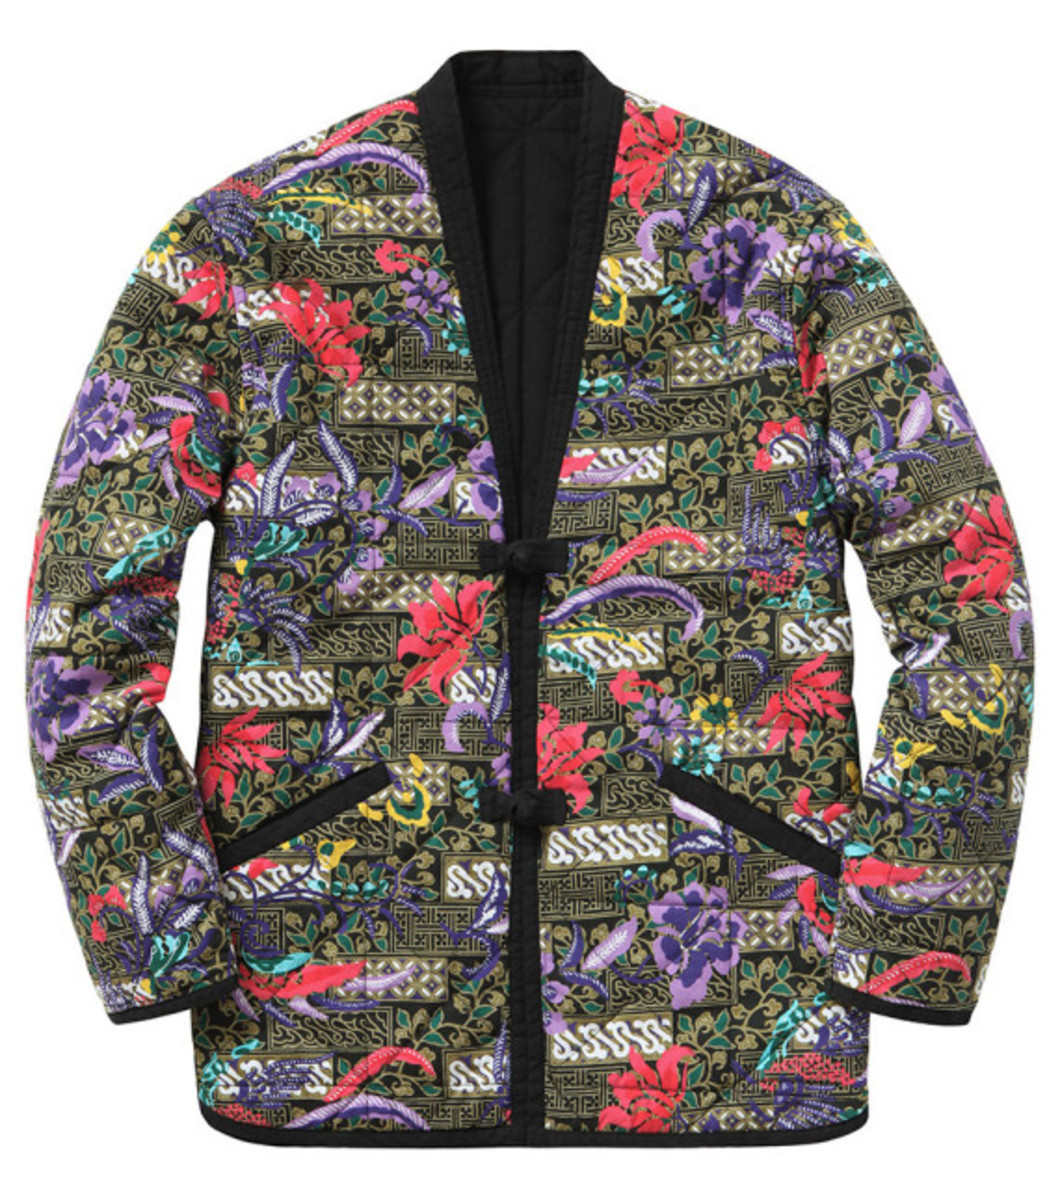 supreme-spring-summer-2015-outerwear-collection-14